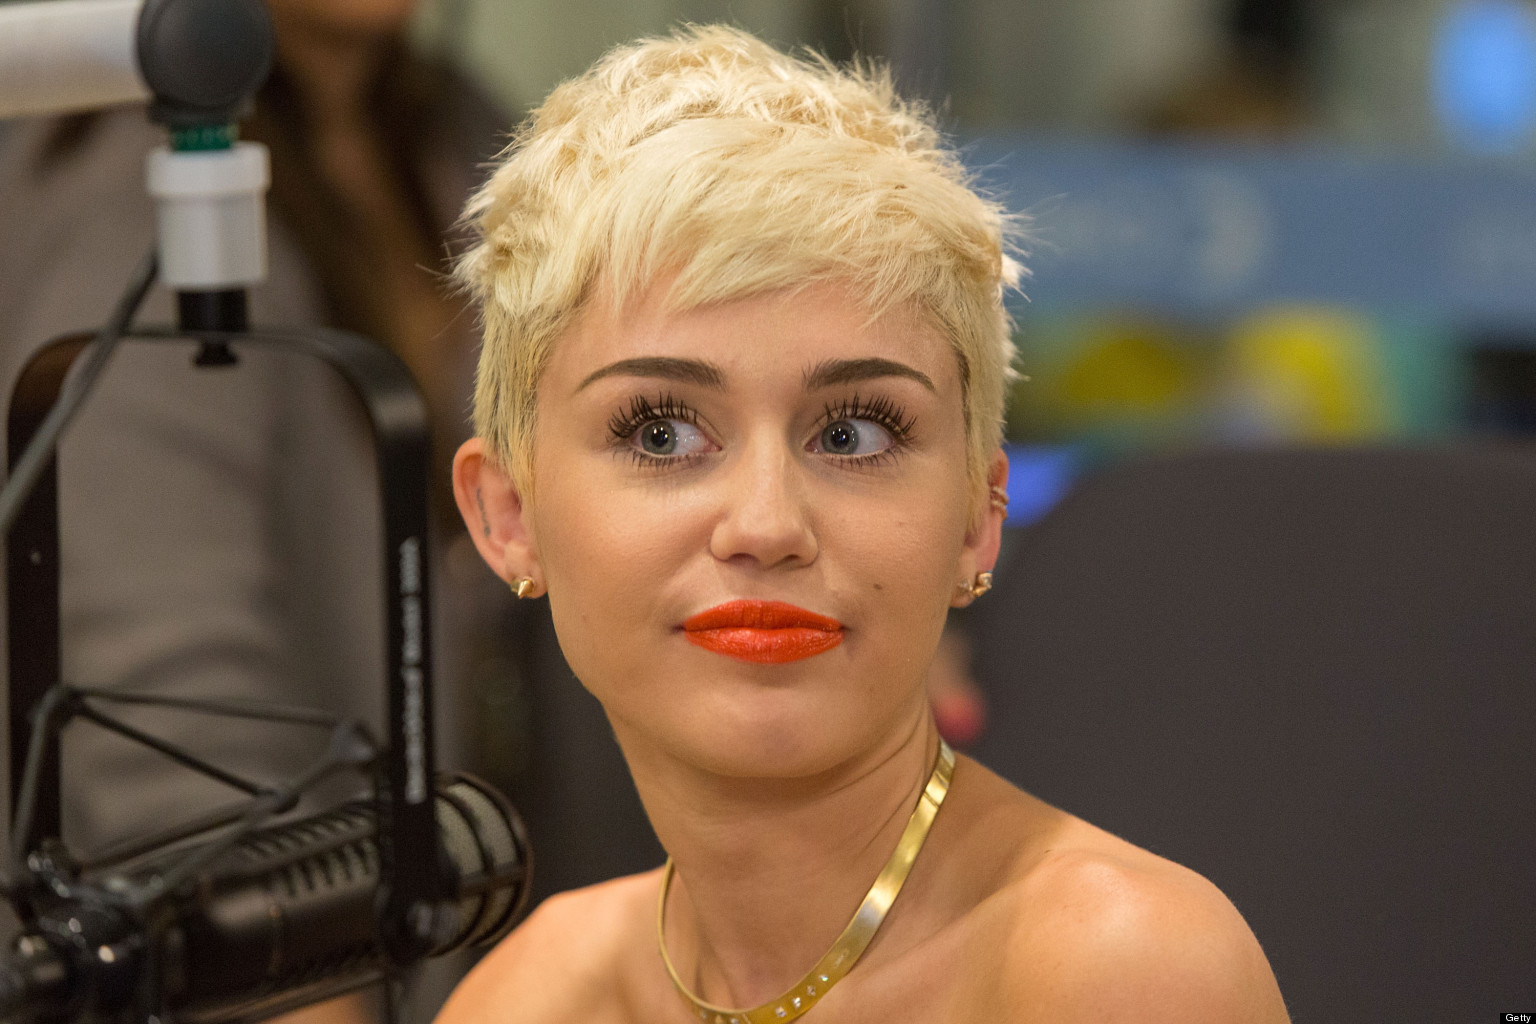 Miley Cyrus: Miley Cyrus And Weed: Singer Dishes On Her Mentality